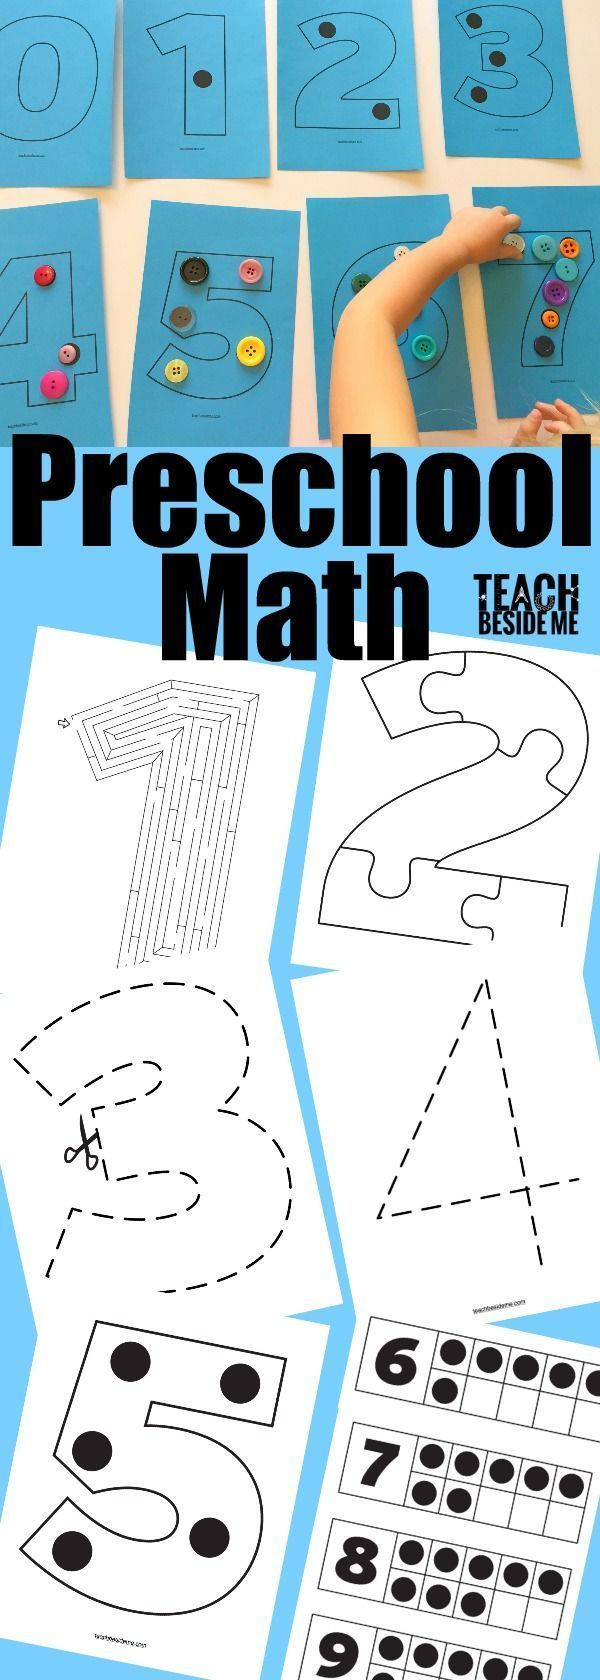 332 best Math images on Pinterest | Brain games, Decimal and ...